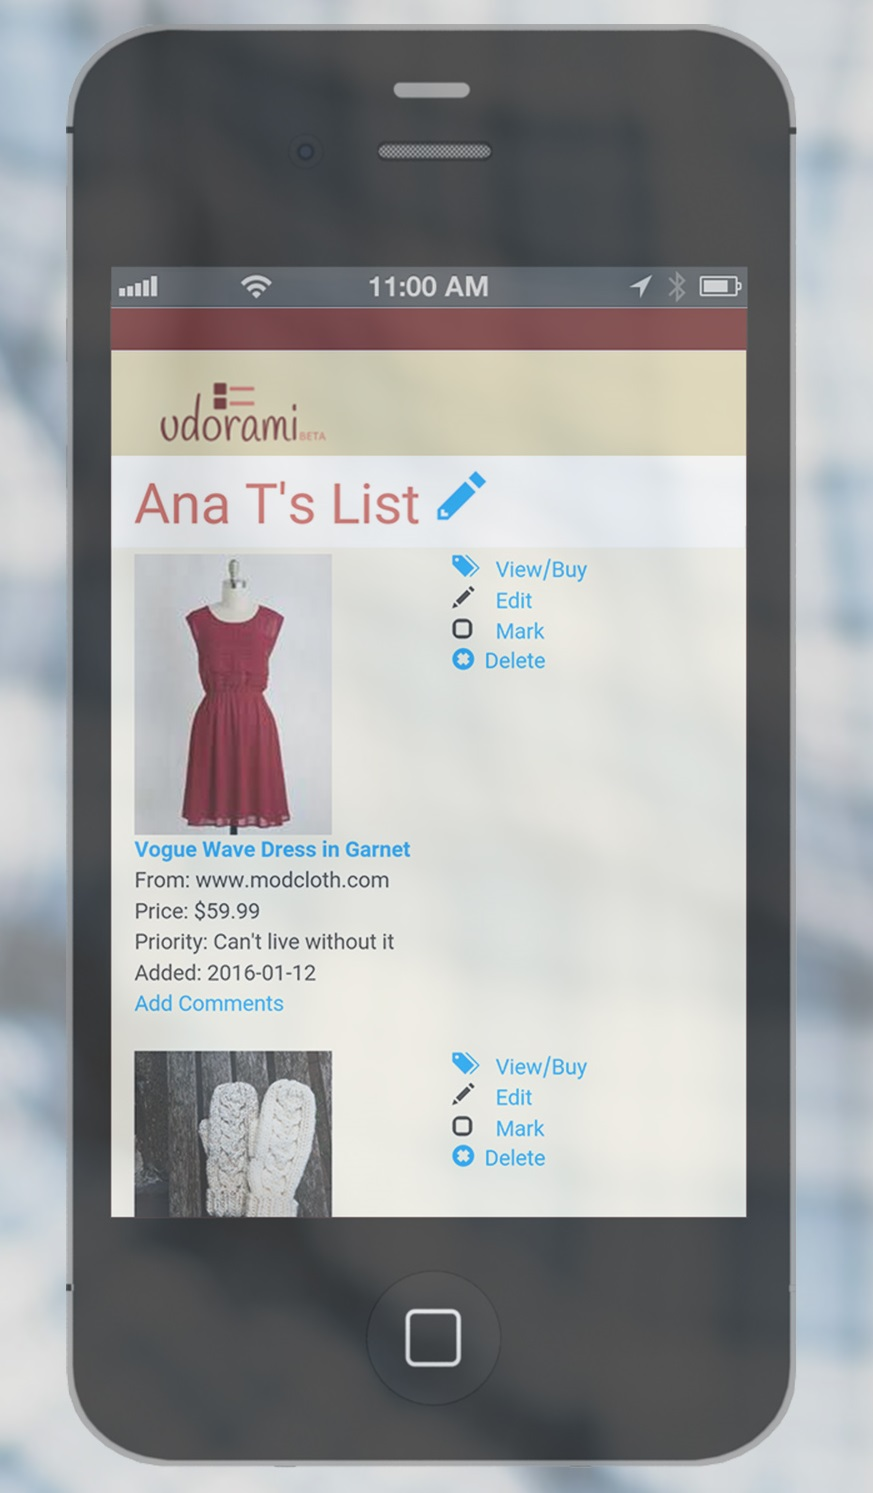 list on phone